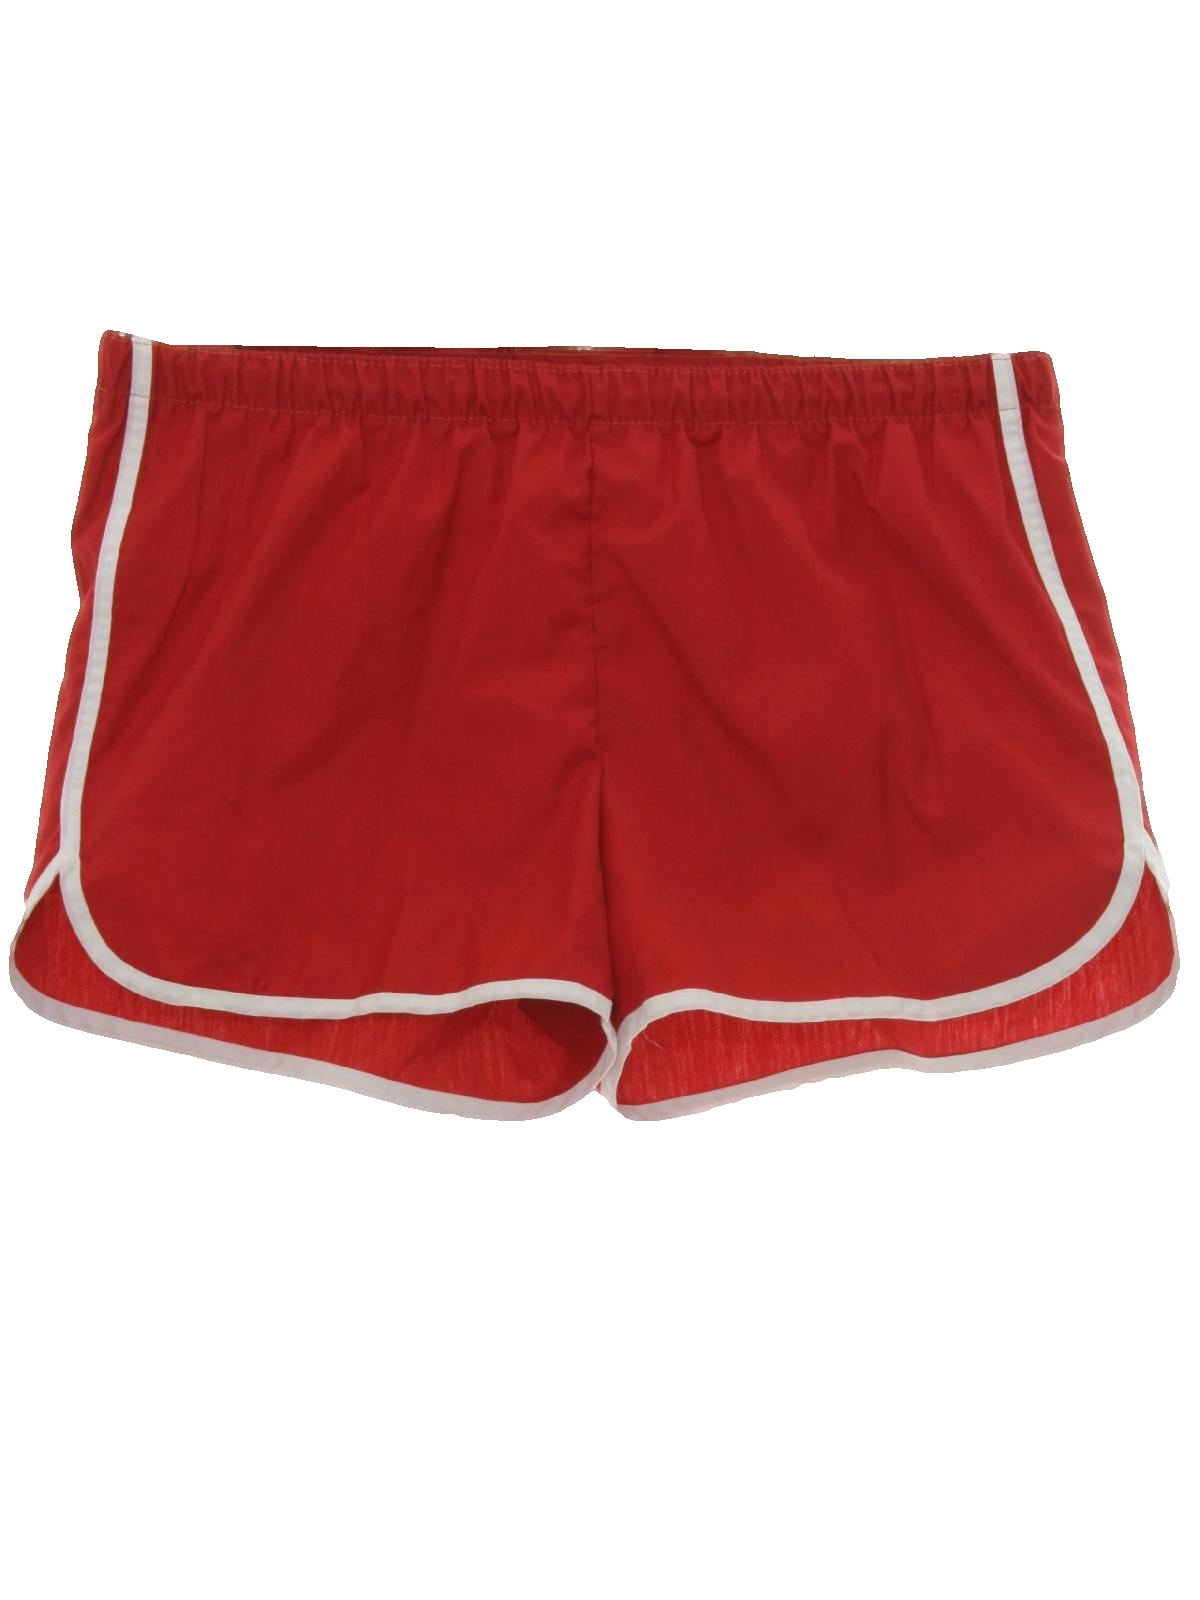 1980's Retro Swimsuit/Swimwear: 80s -Care Label Only- Mens red ...